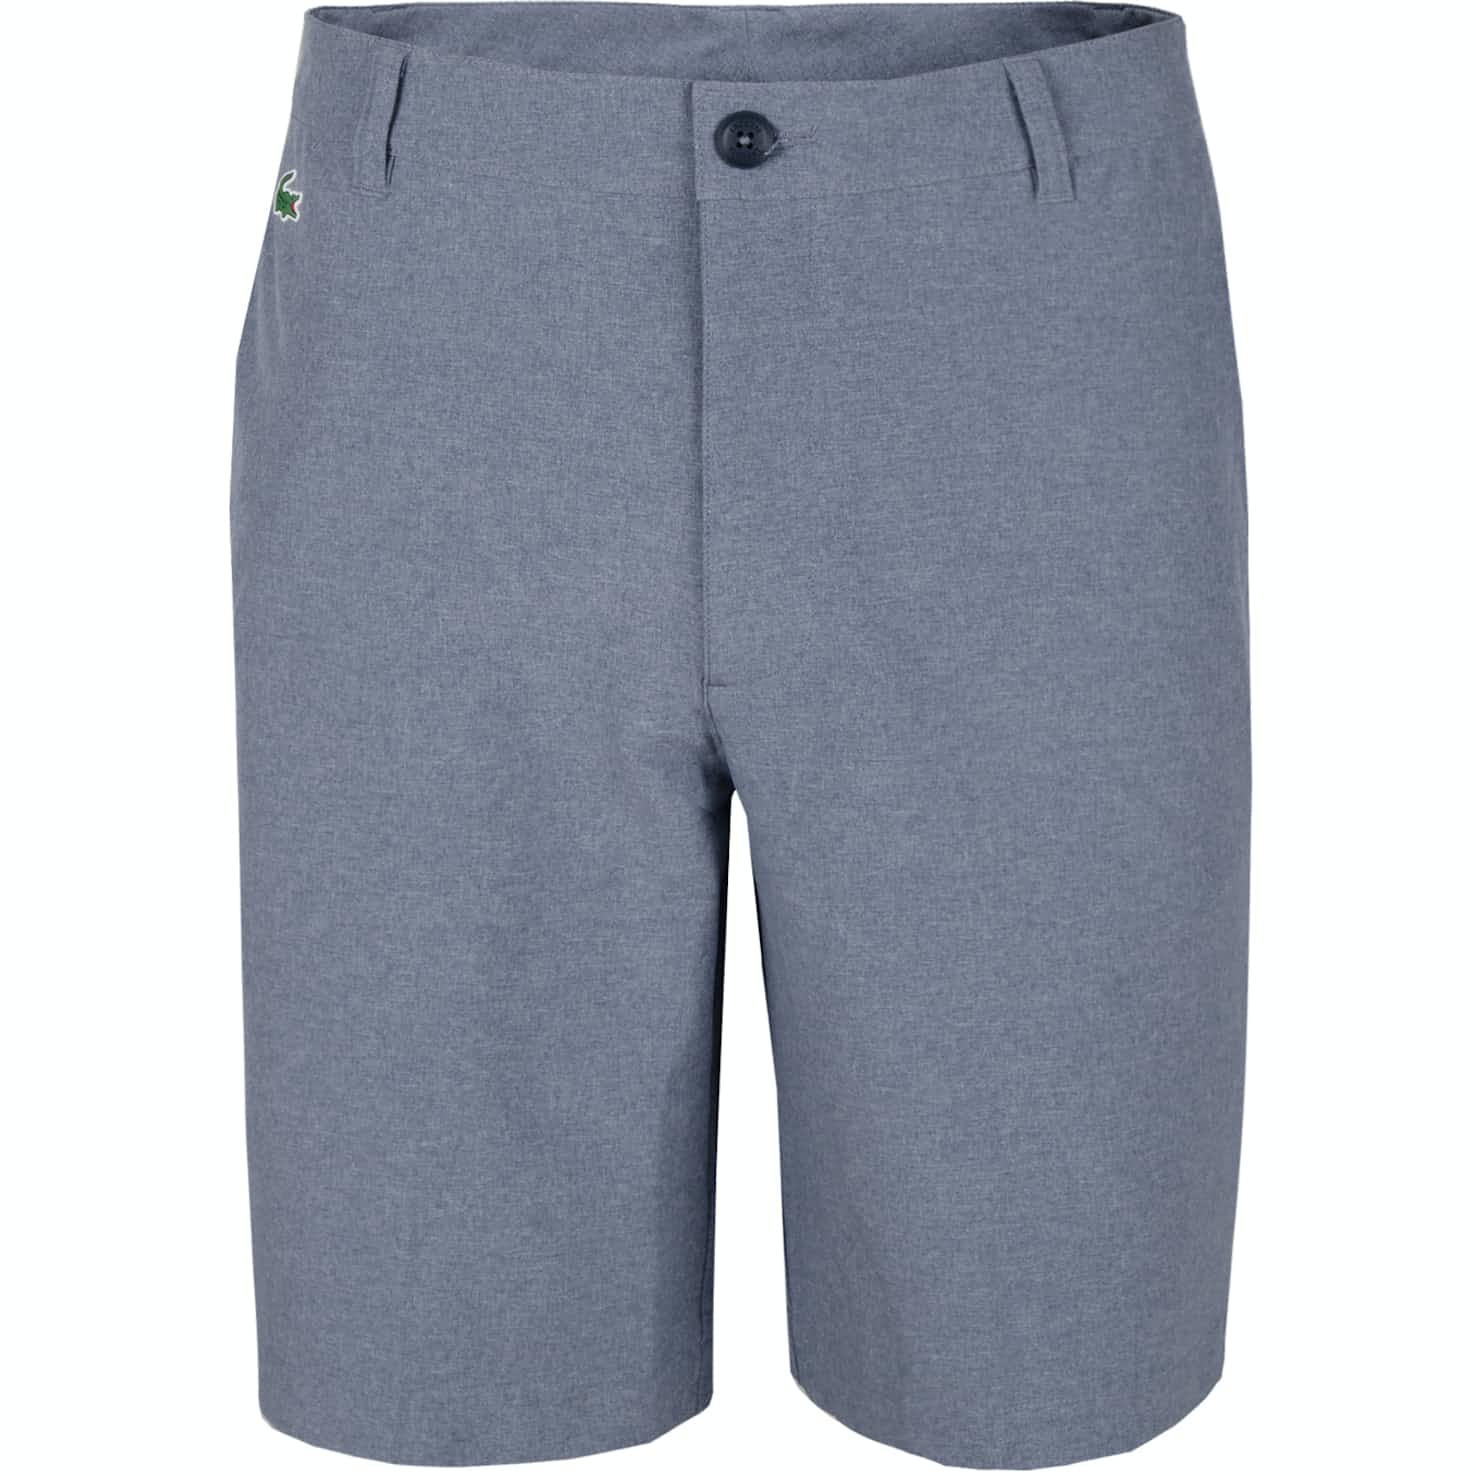 Ryder Cup Technical Stretch Shorts Navy - SS18